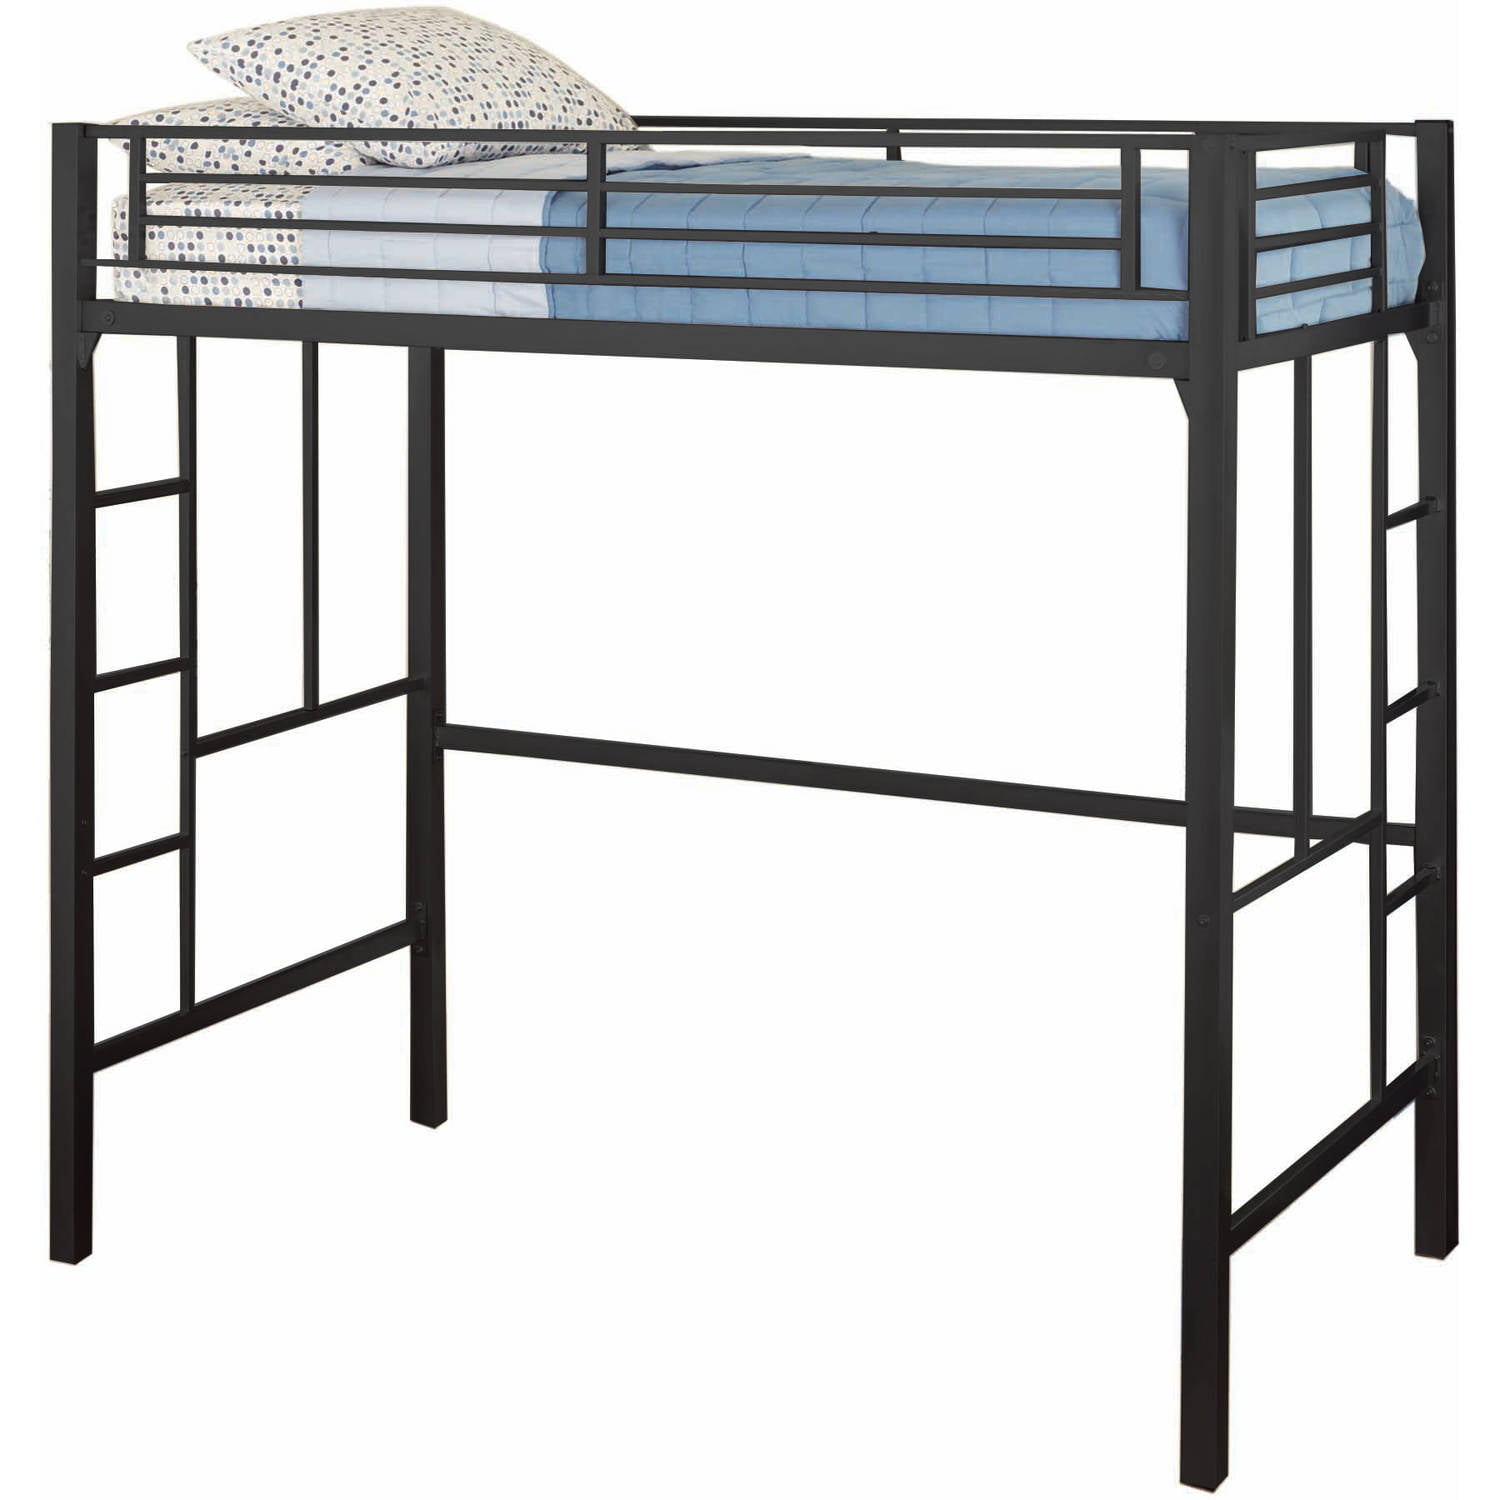 Twin Loft Bed Kids Bedroom Furniture Bunk Beds Dorm